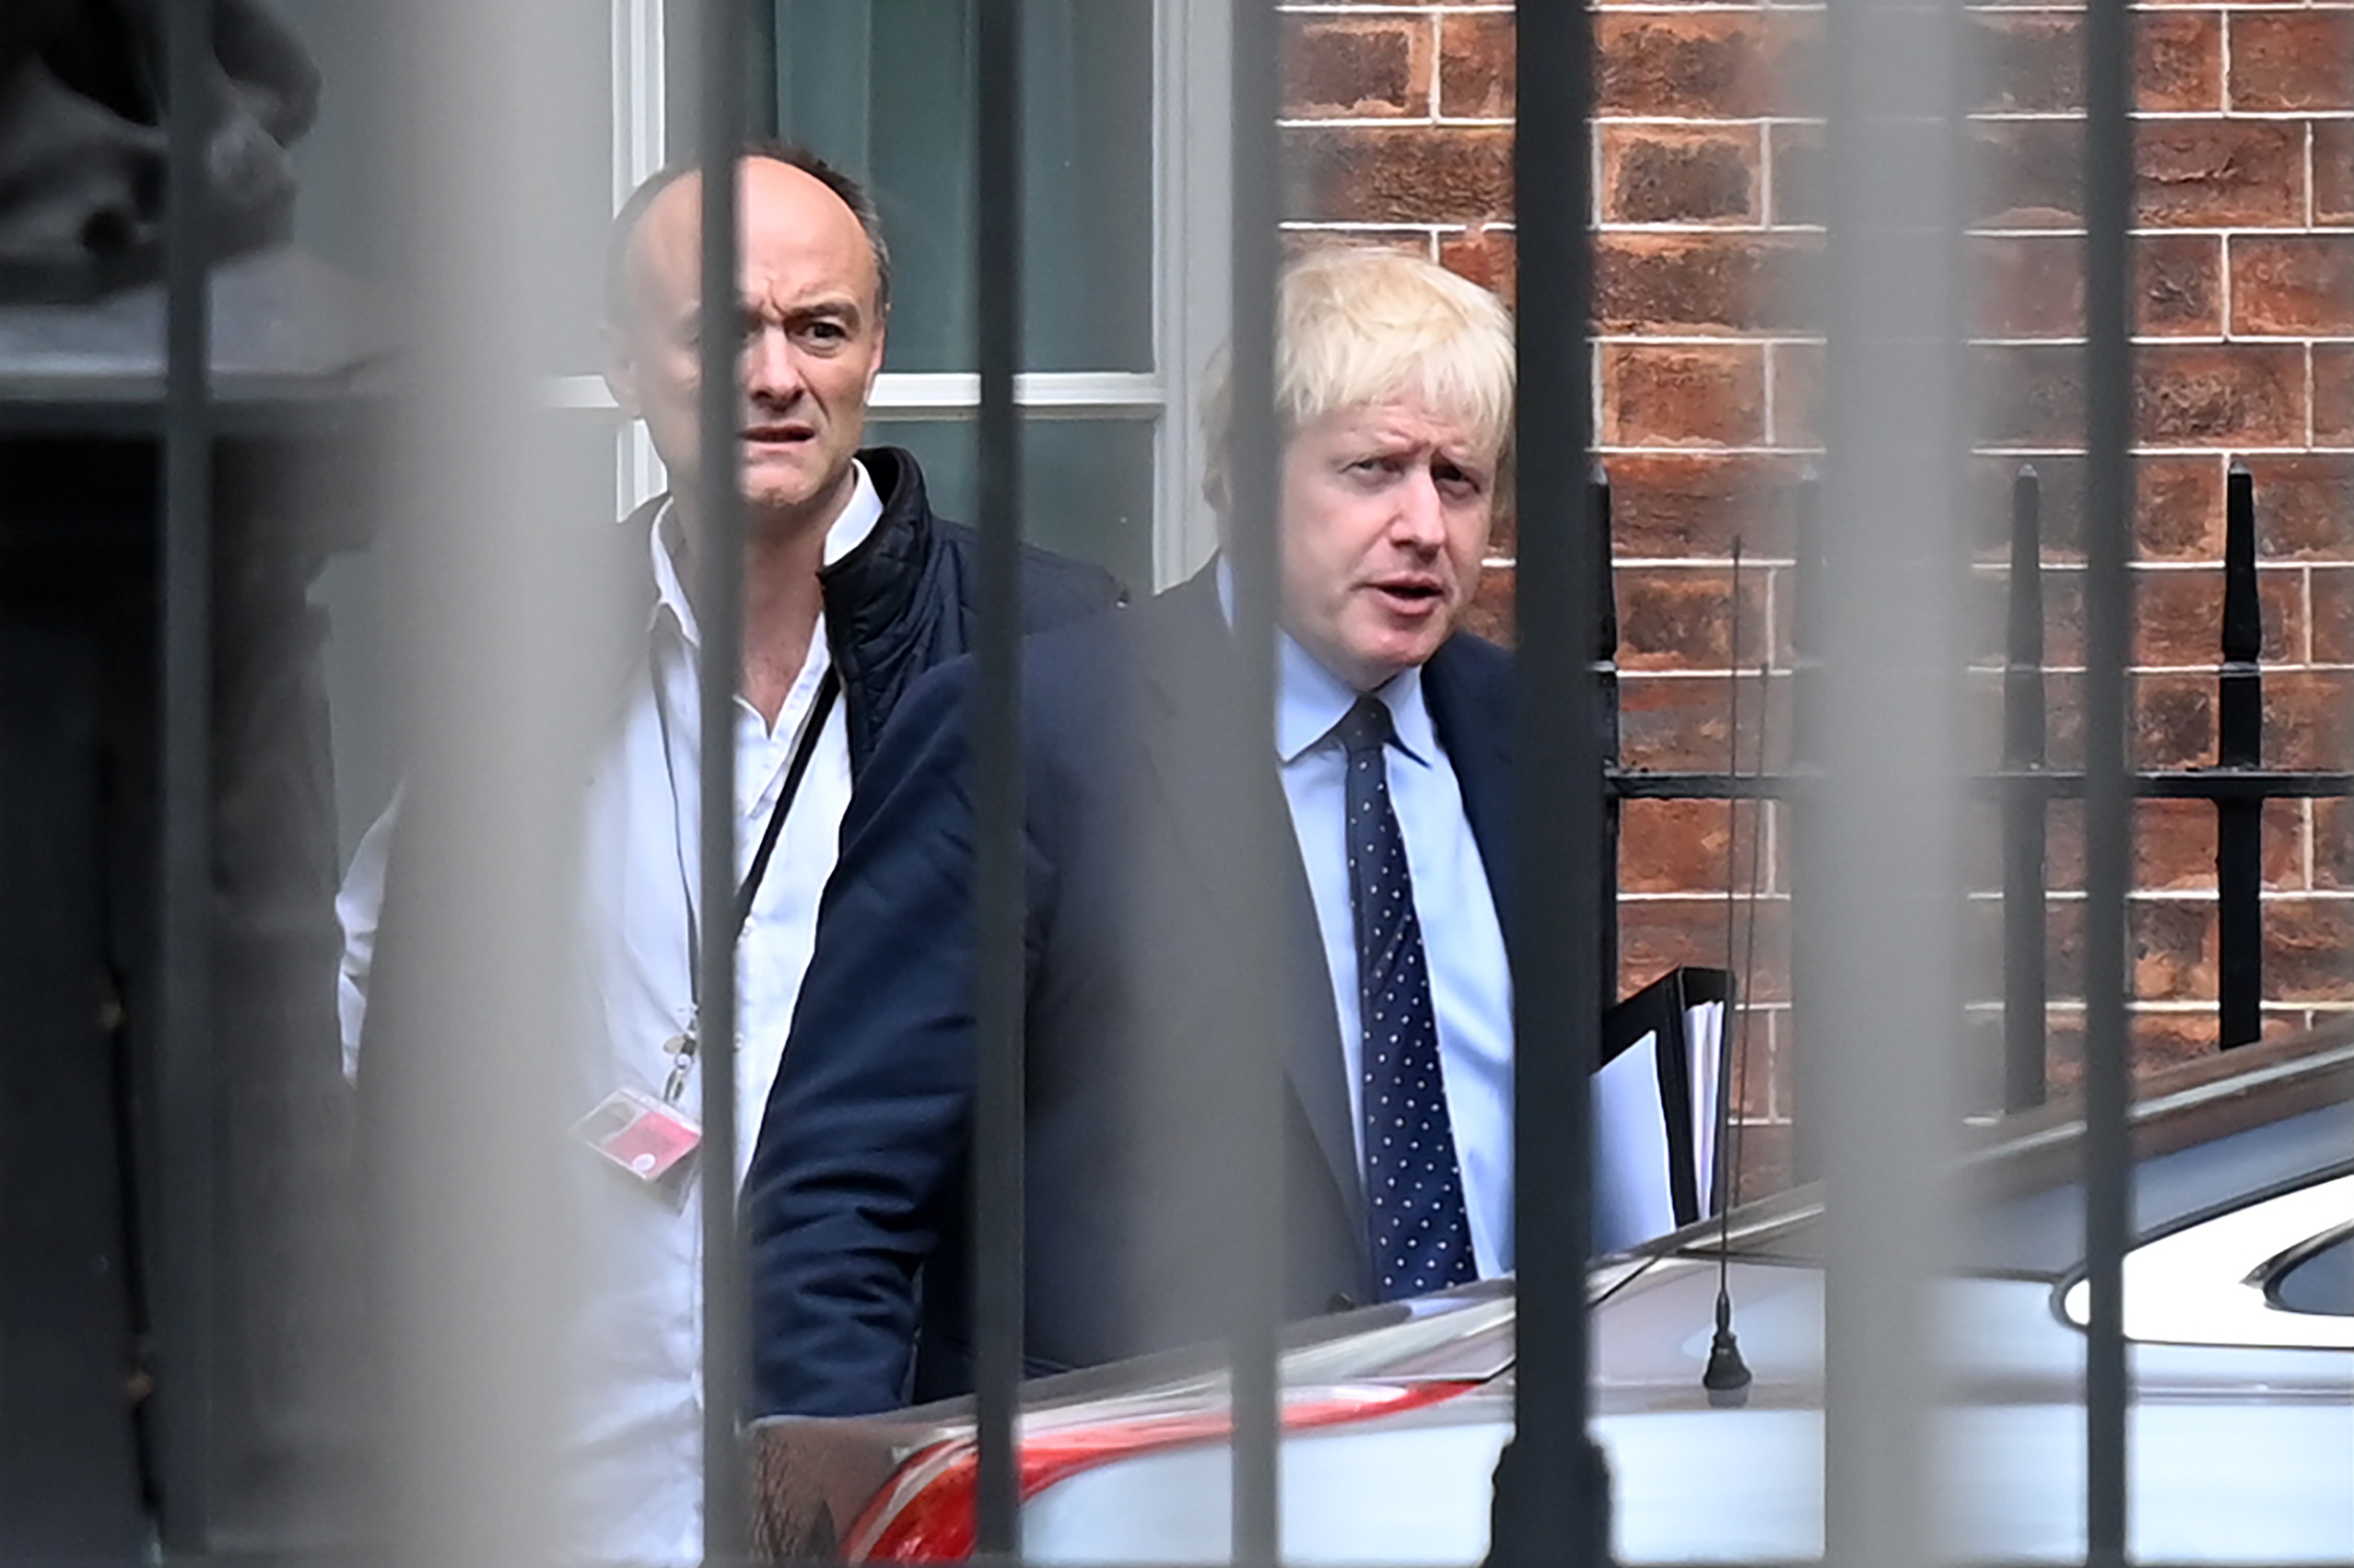 Boris Johnson draws media fire from all sides after top aide accused of lockdown breach